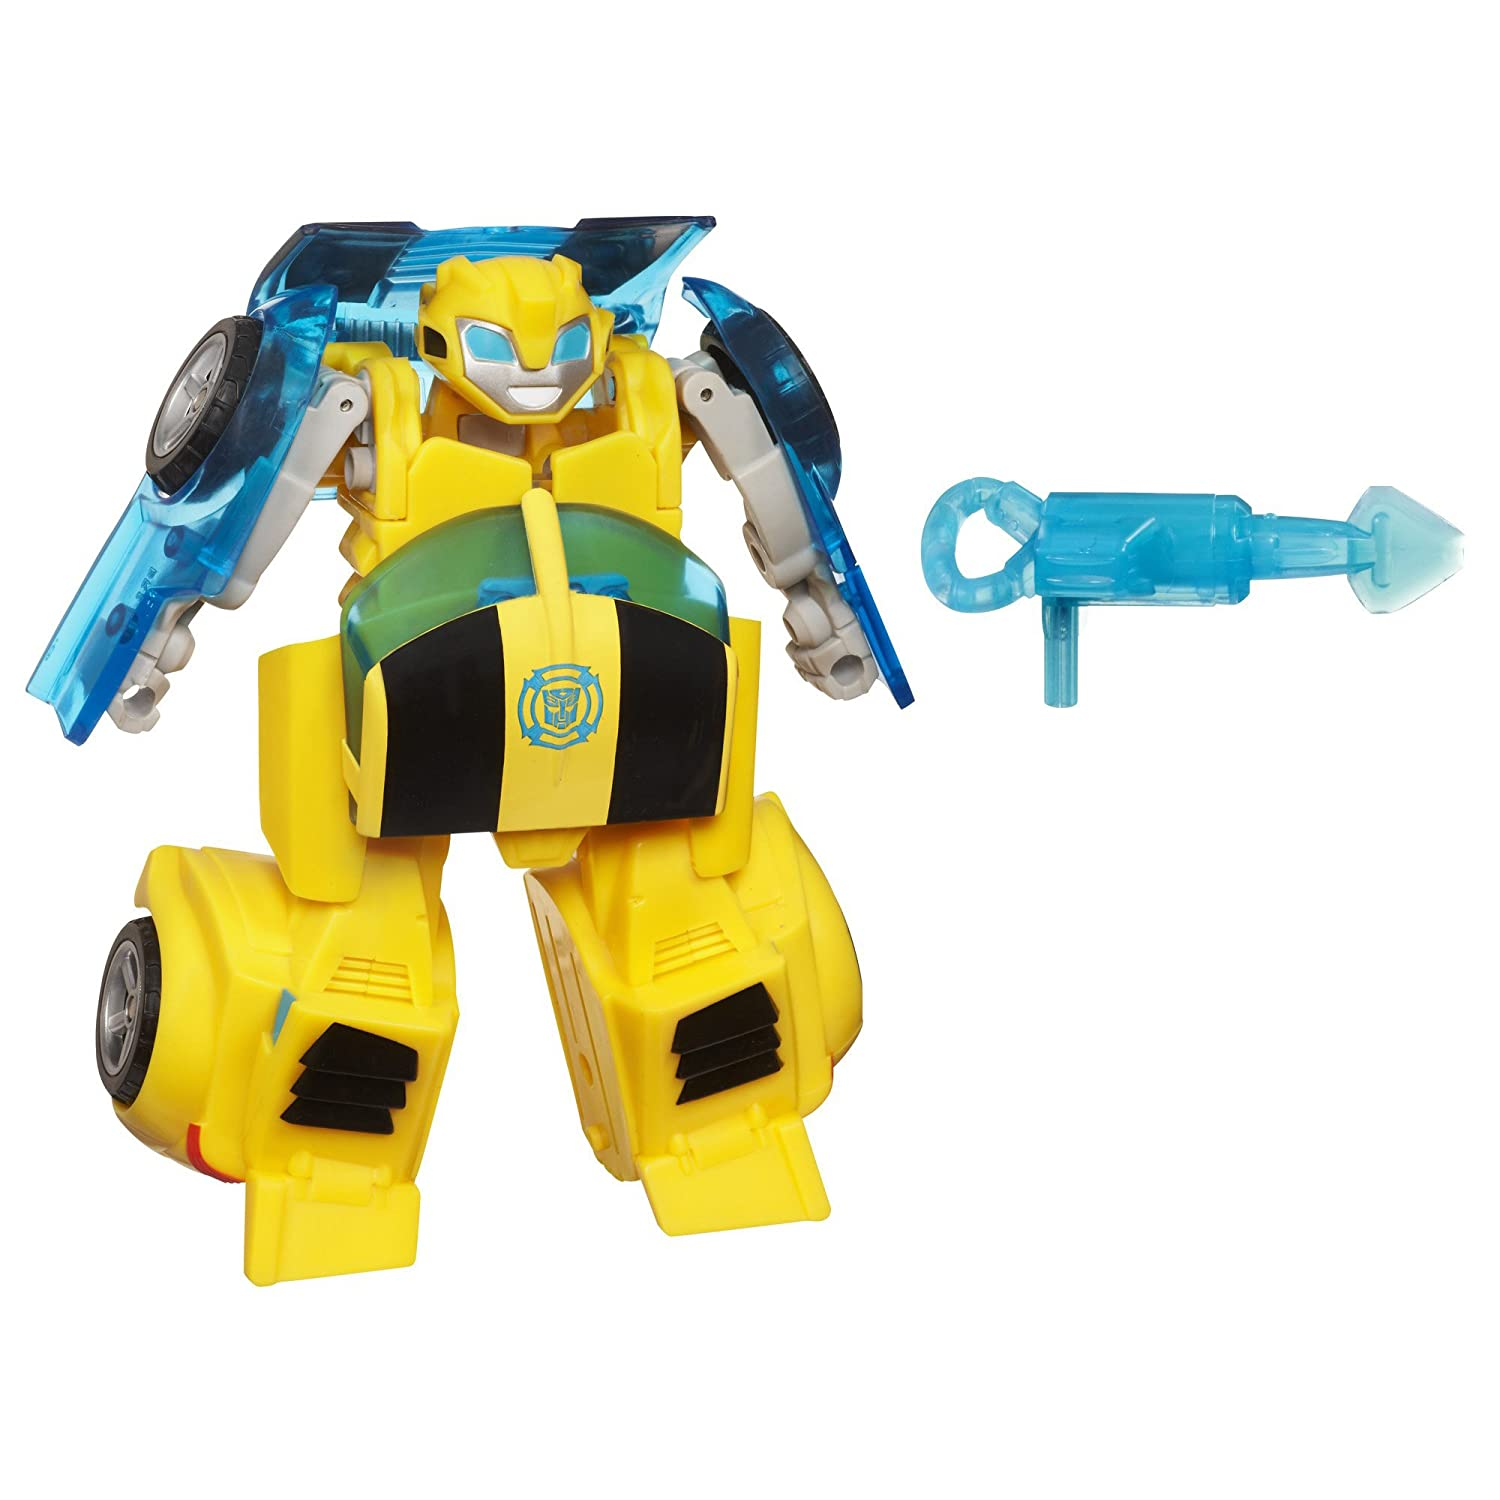 NEW Transformers Playskool Heroes Rescue Bots Mystery Pack